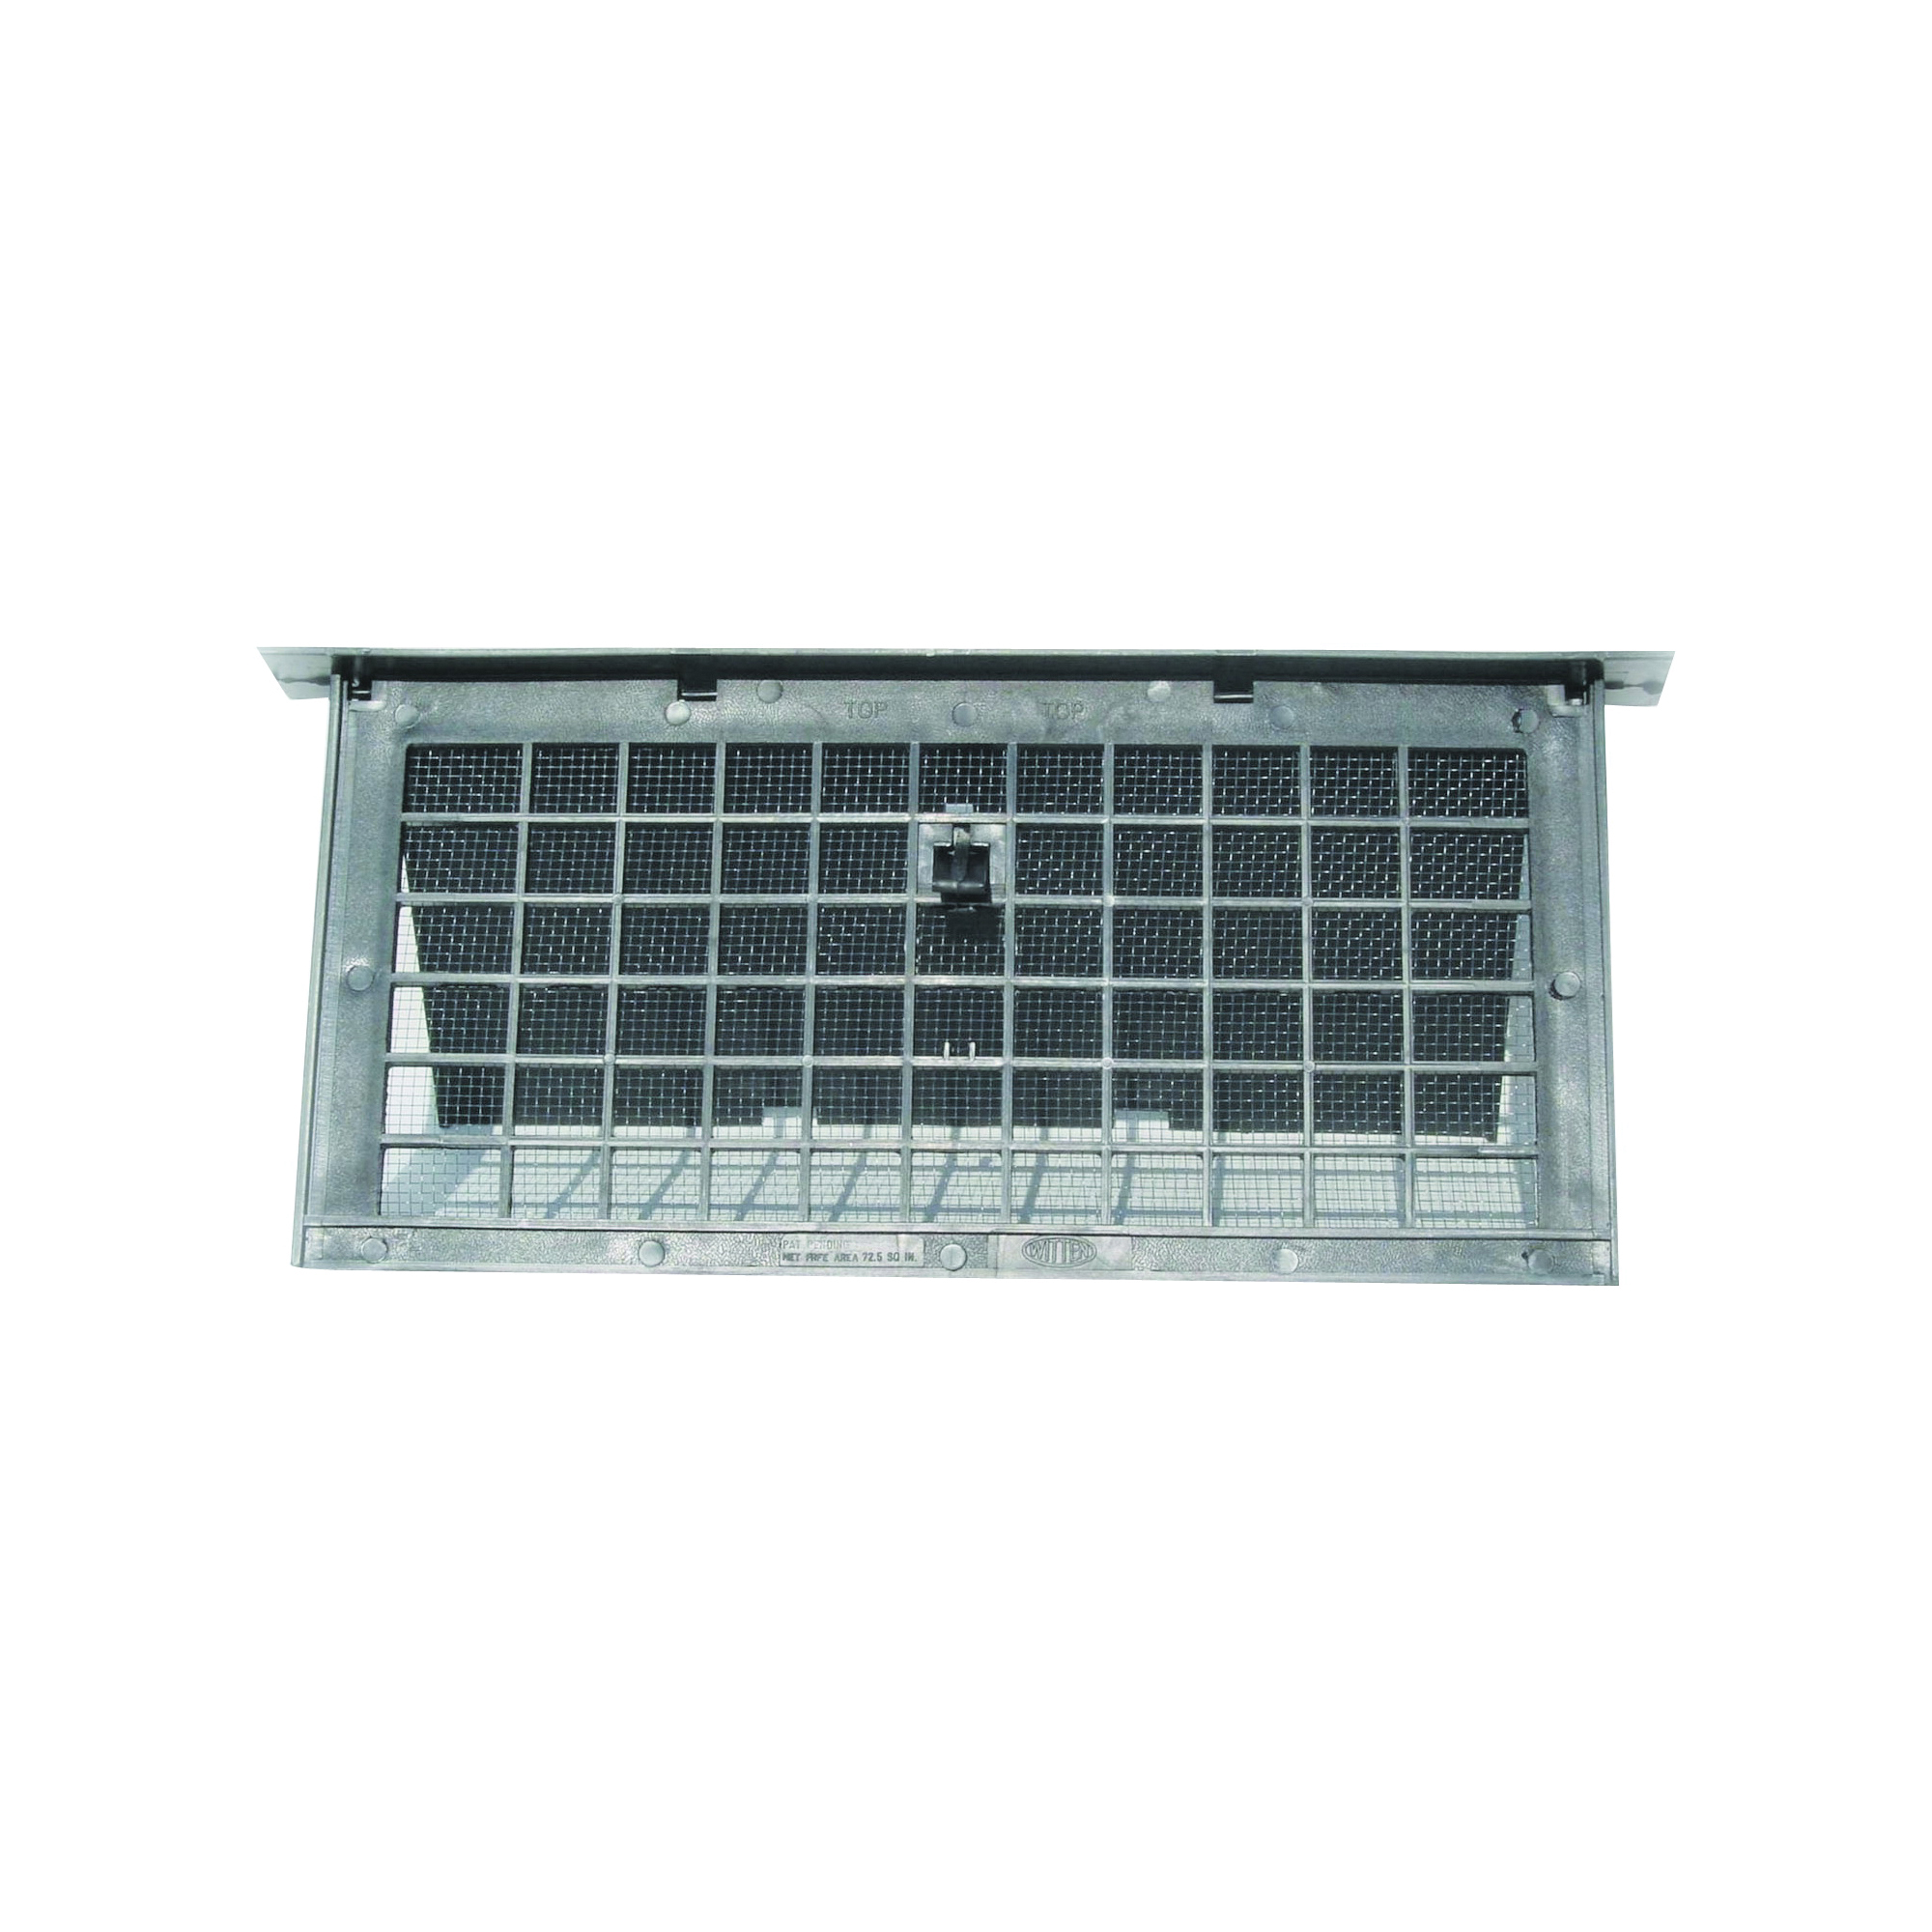 Picture of Bestvents PMD-1BLACK Foundation Vent, 72 sq-in Net Free Ventilating Area, Mesh Grill, Polypropylene, Black Oxide